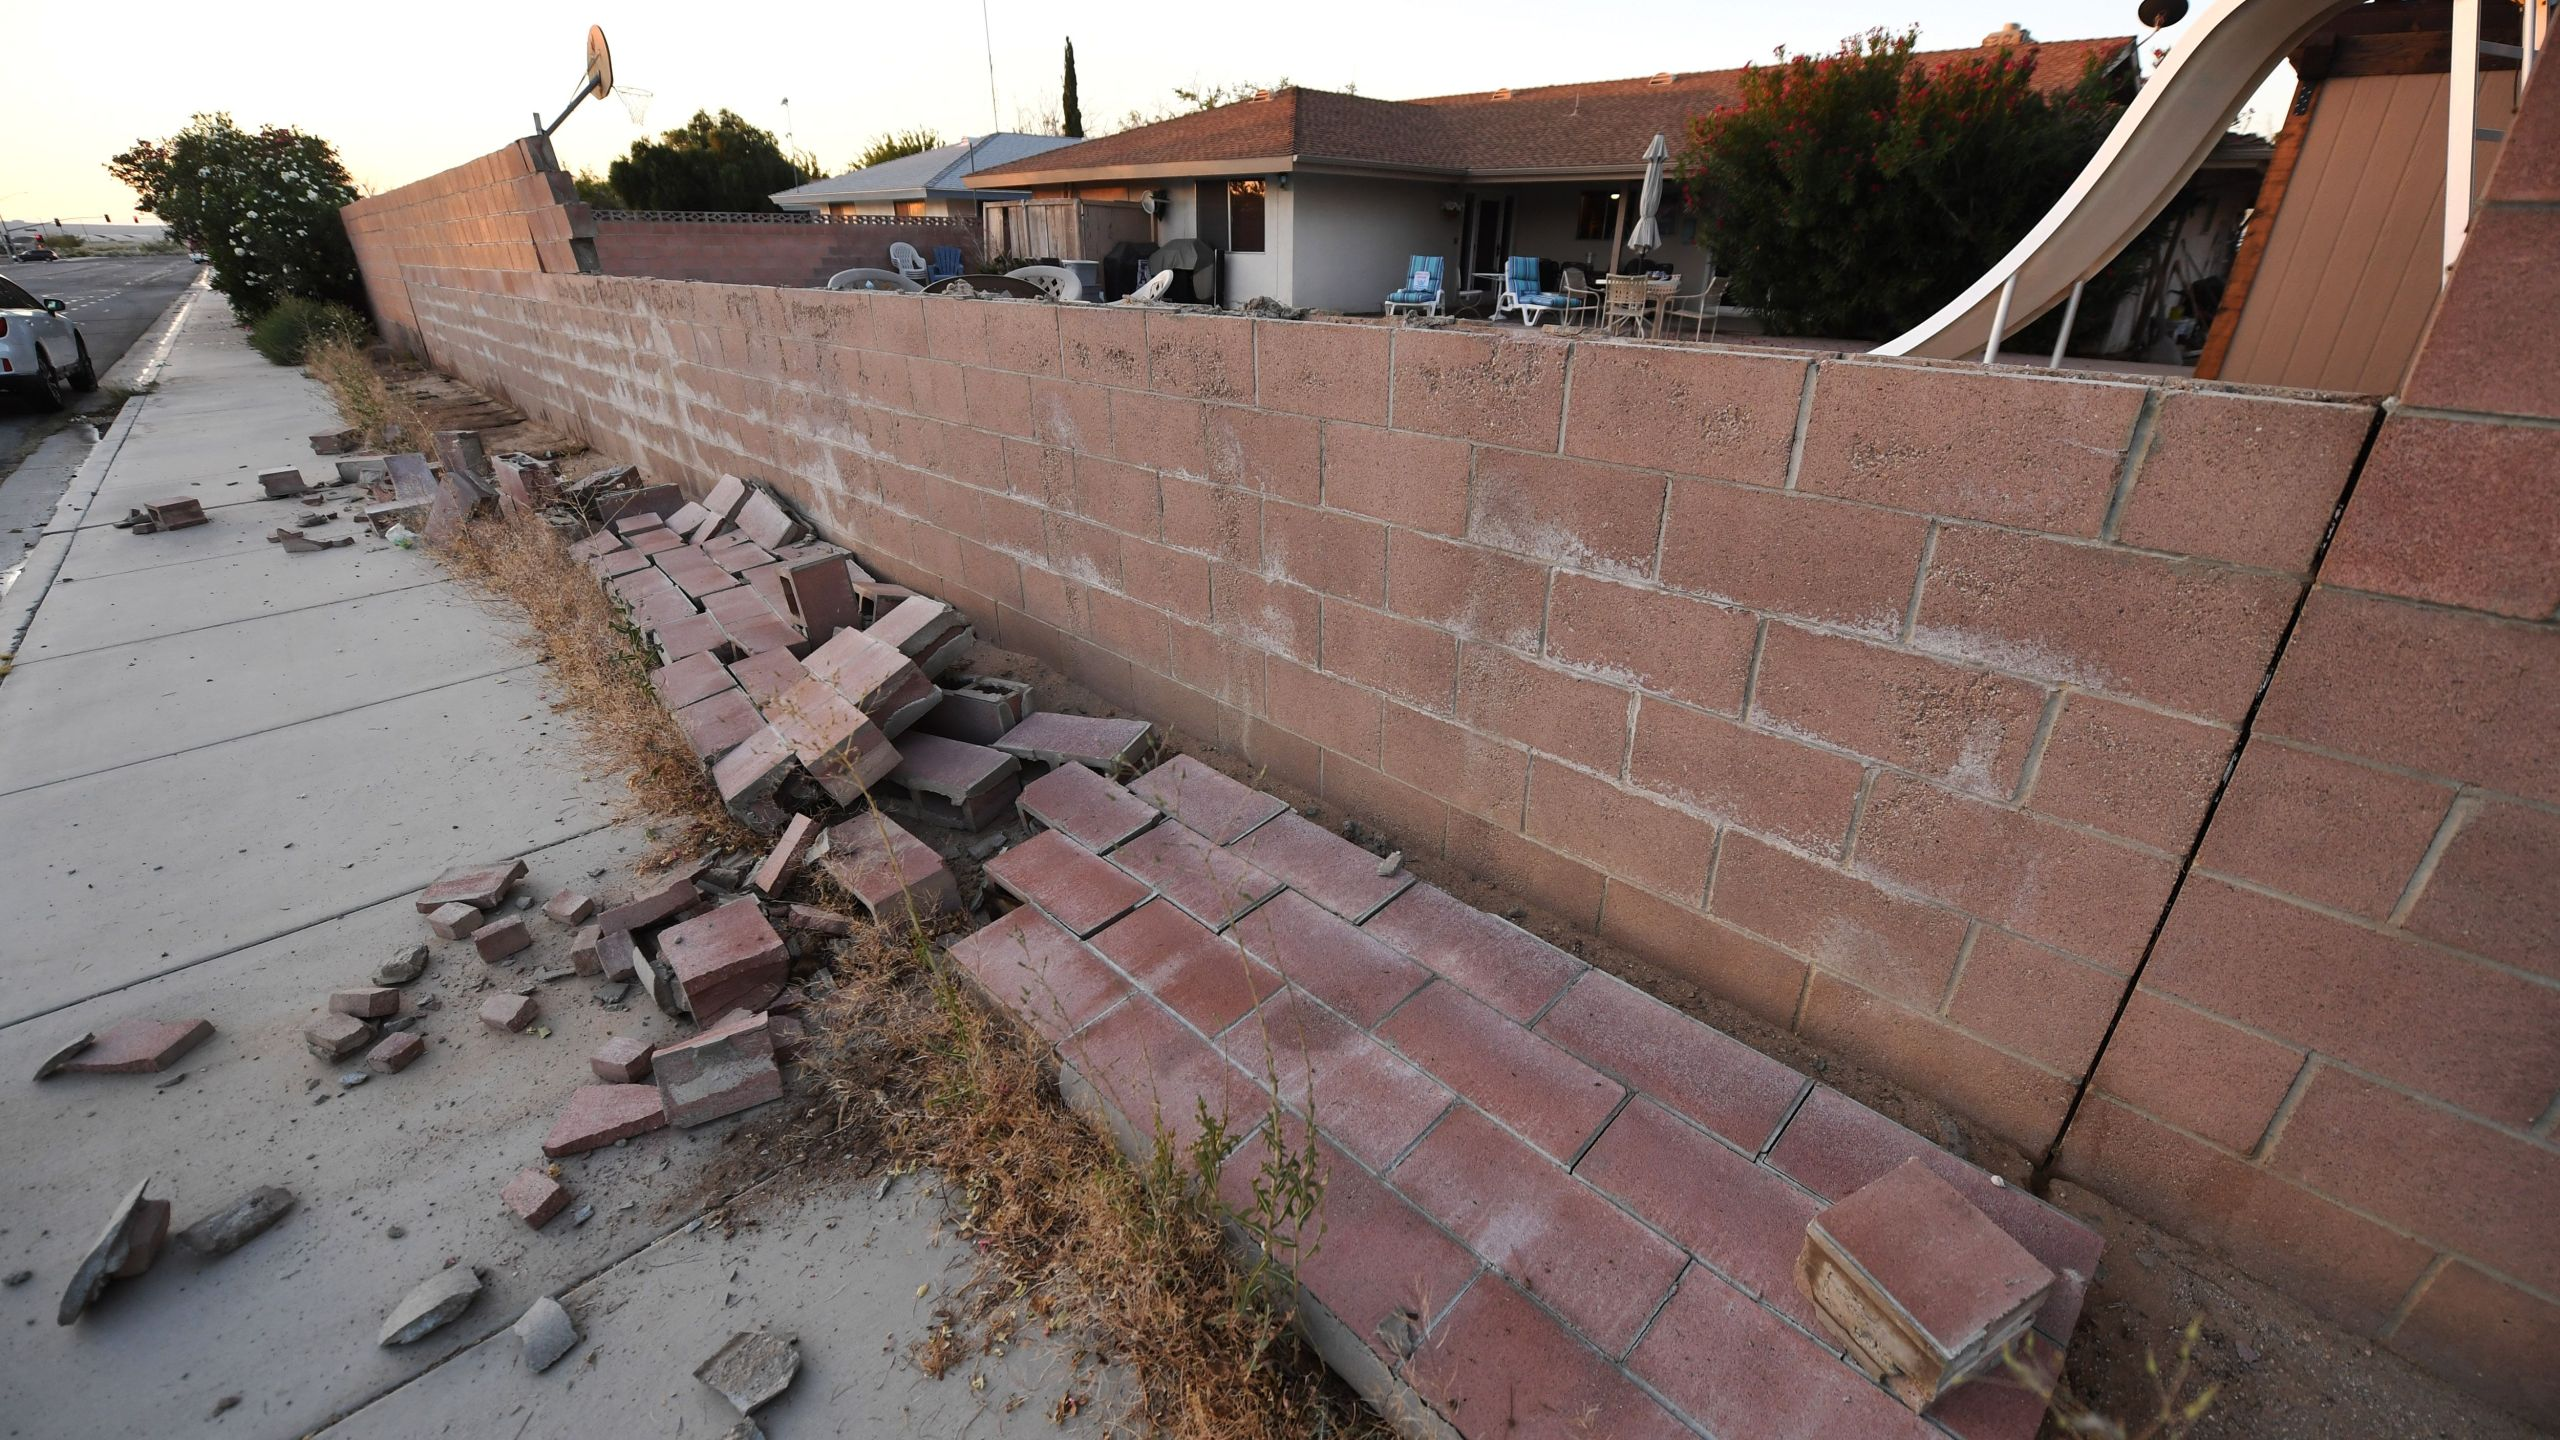 A cinderblock wall partially destroyed in Ridgecrest on July 6, 2019, following a magnitude 7.1 earthquake the previous night. (Credit: ROBYN BECK/AFP/Getty Images)